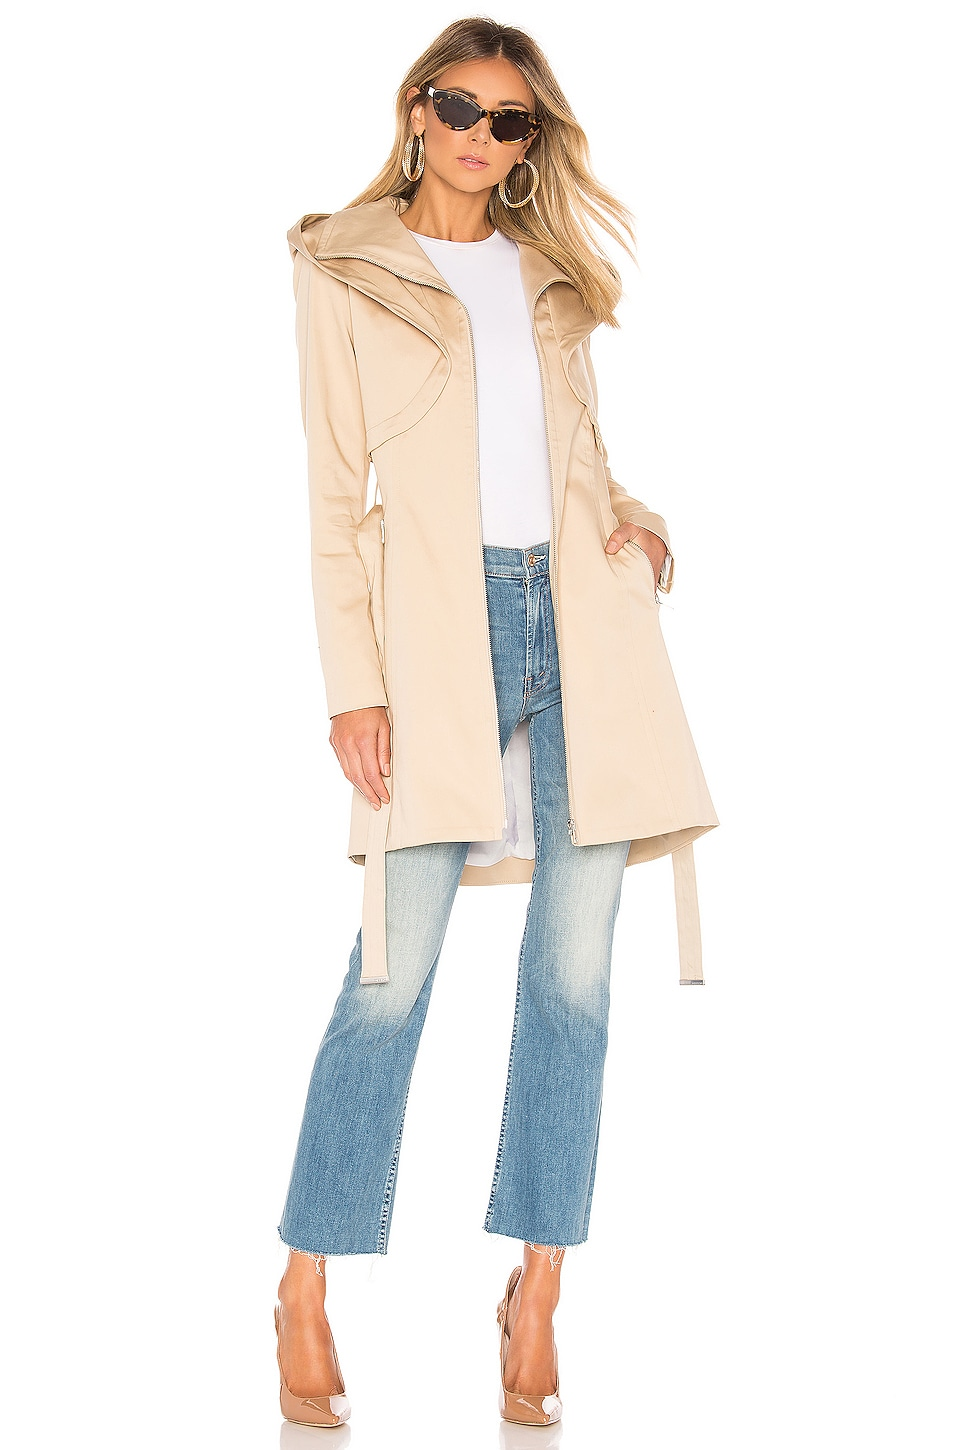 Soia & Kyo Arabella Jacket in Almond